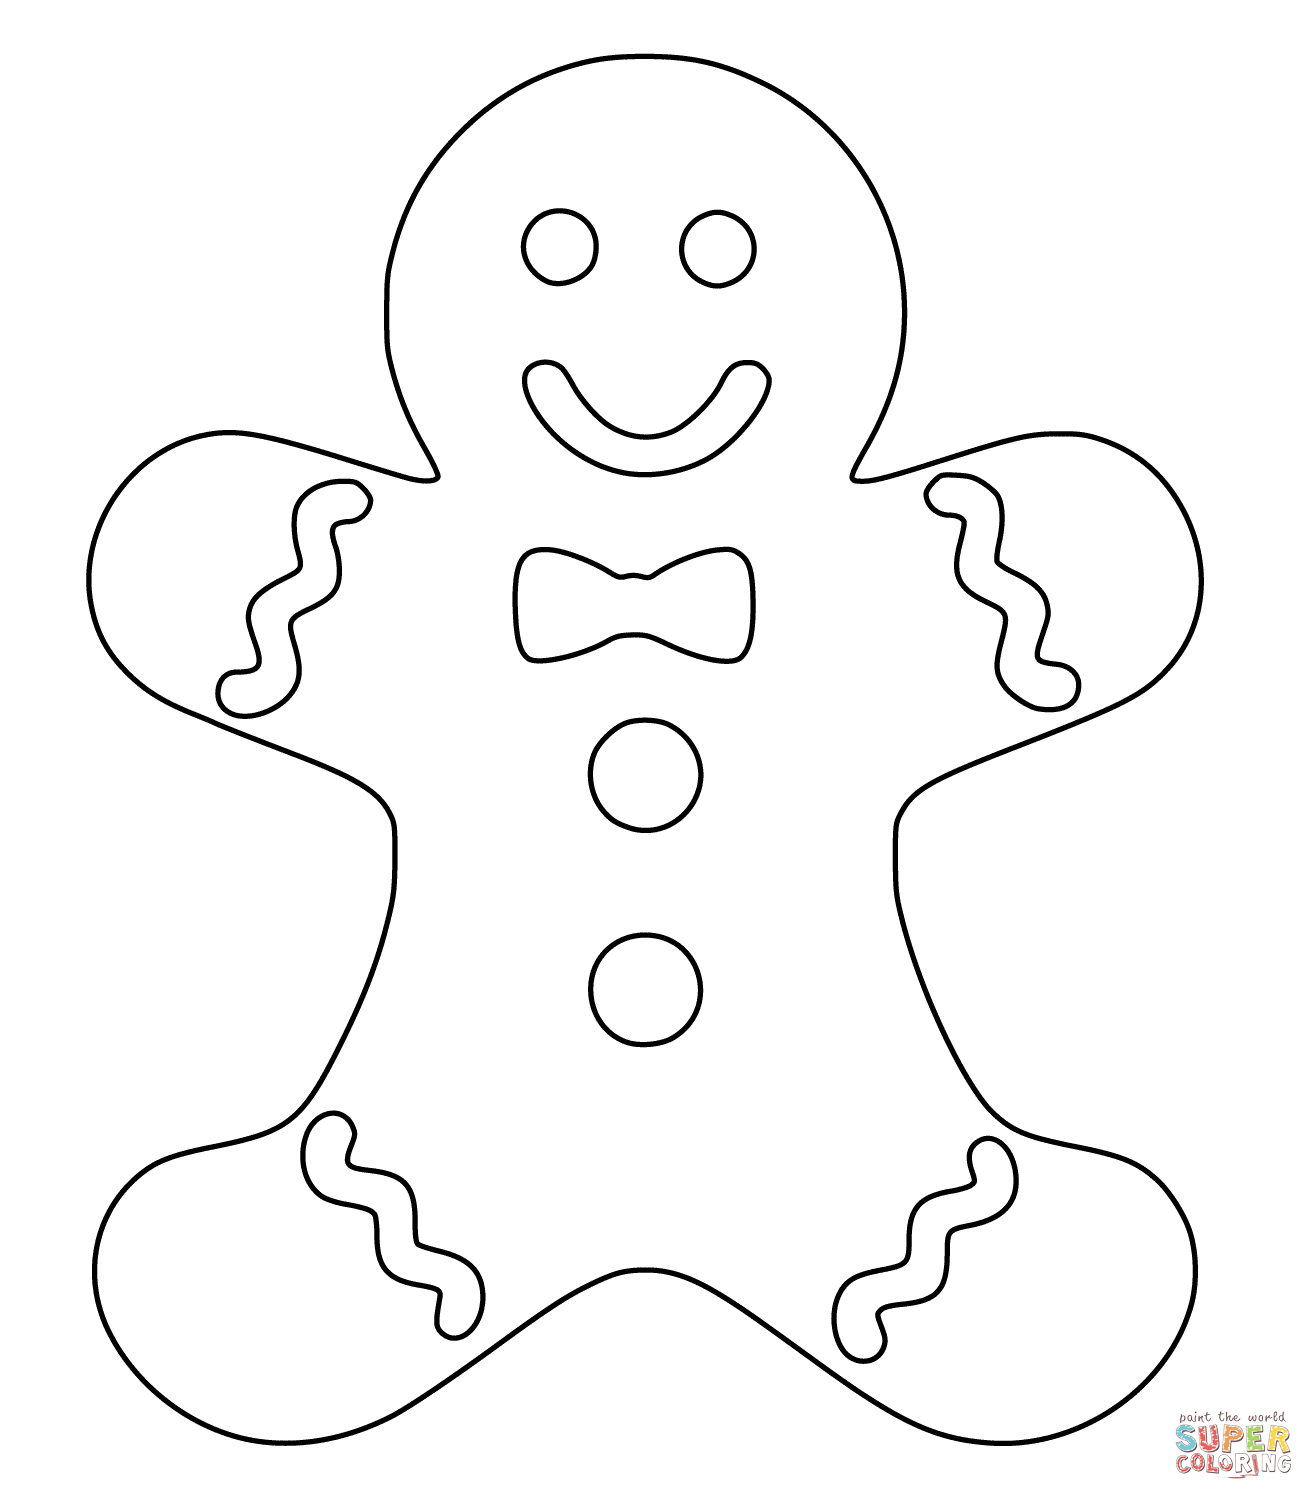 Christmas gingerbread man super coloring